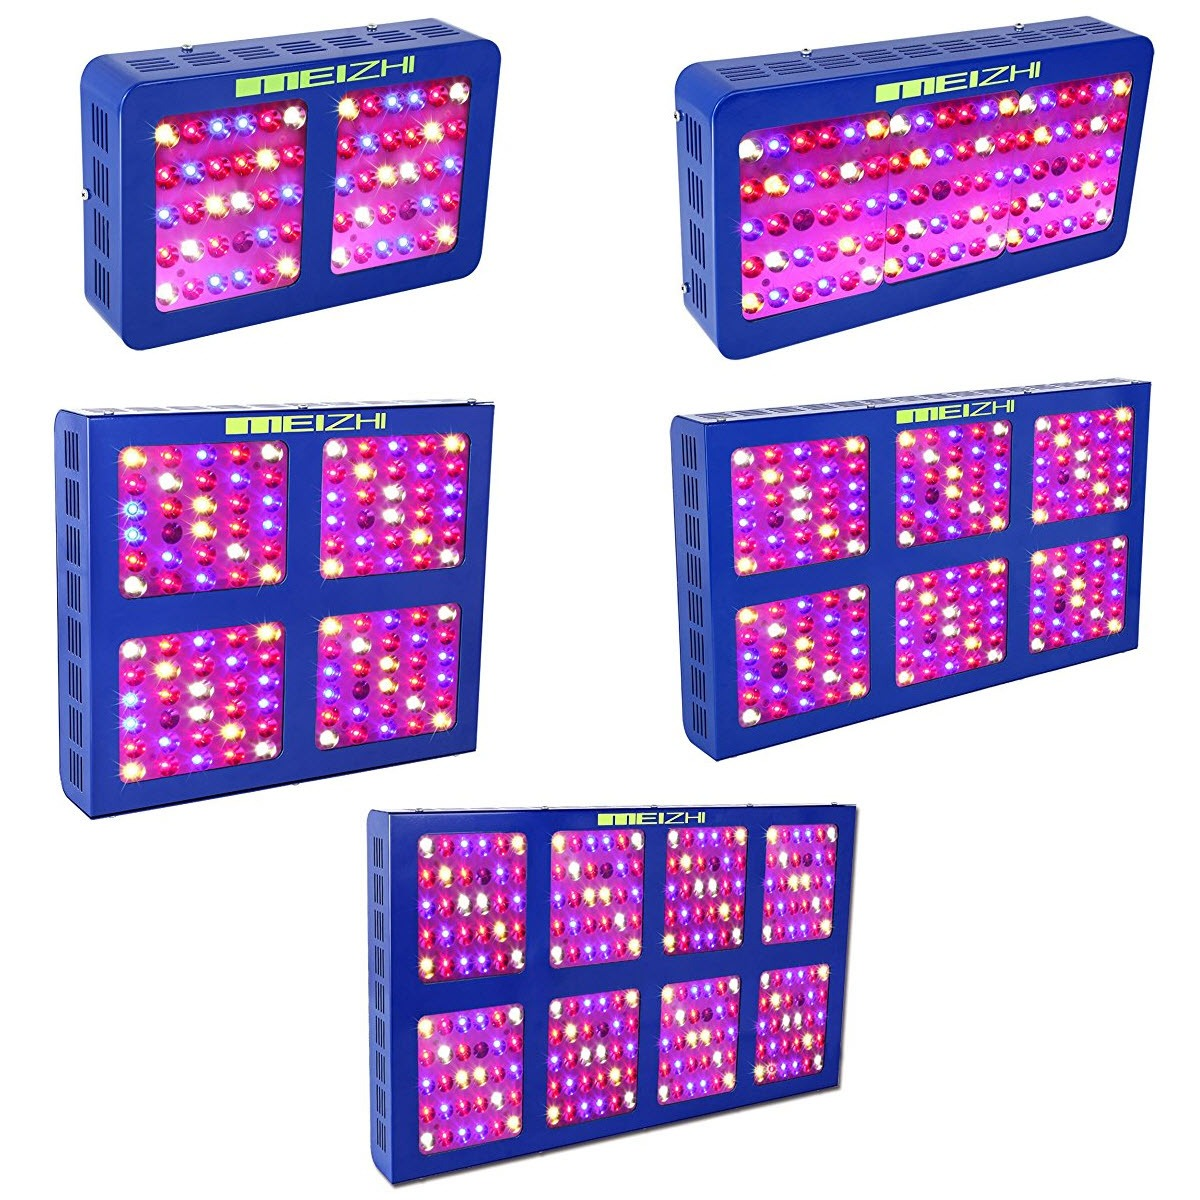 big buds guide best led grow lights 2018 reviews from - HD 1200×1200